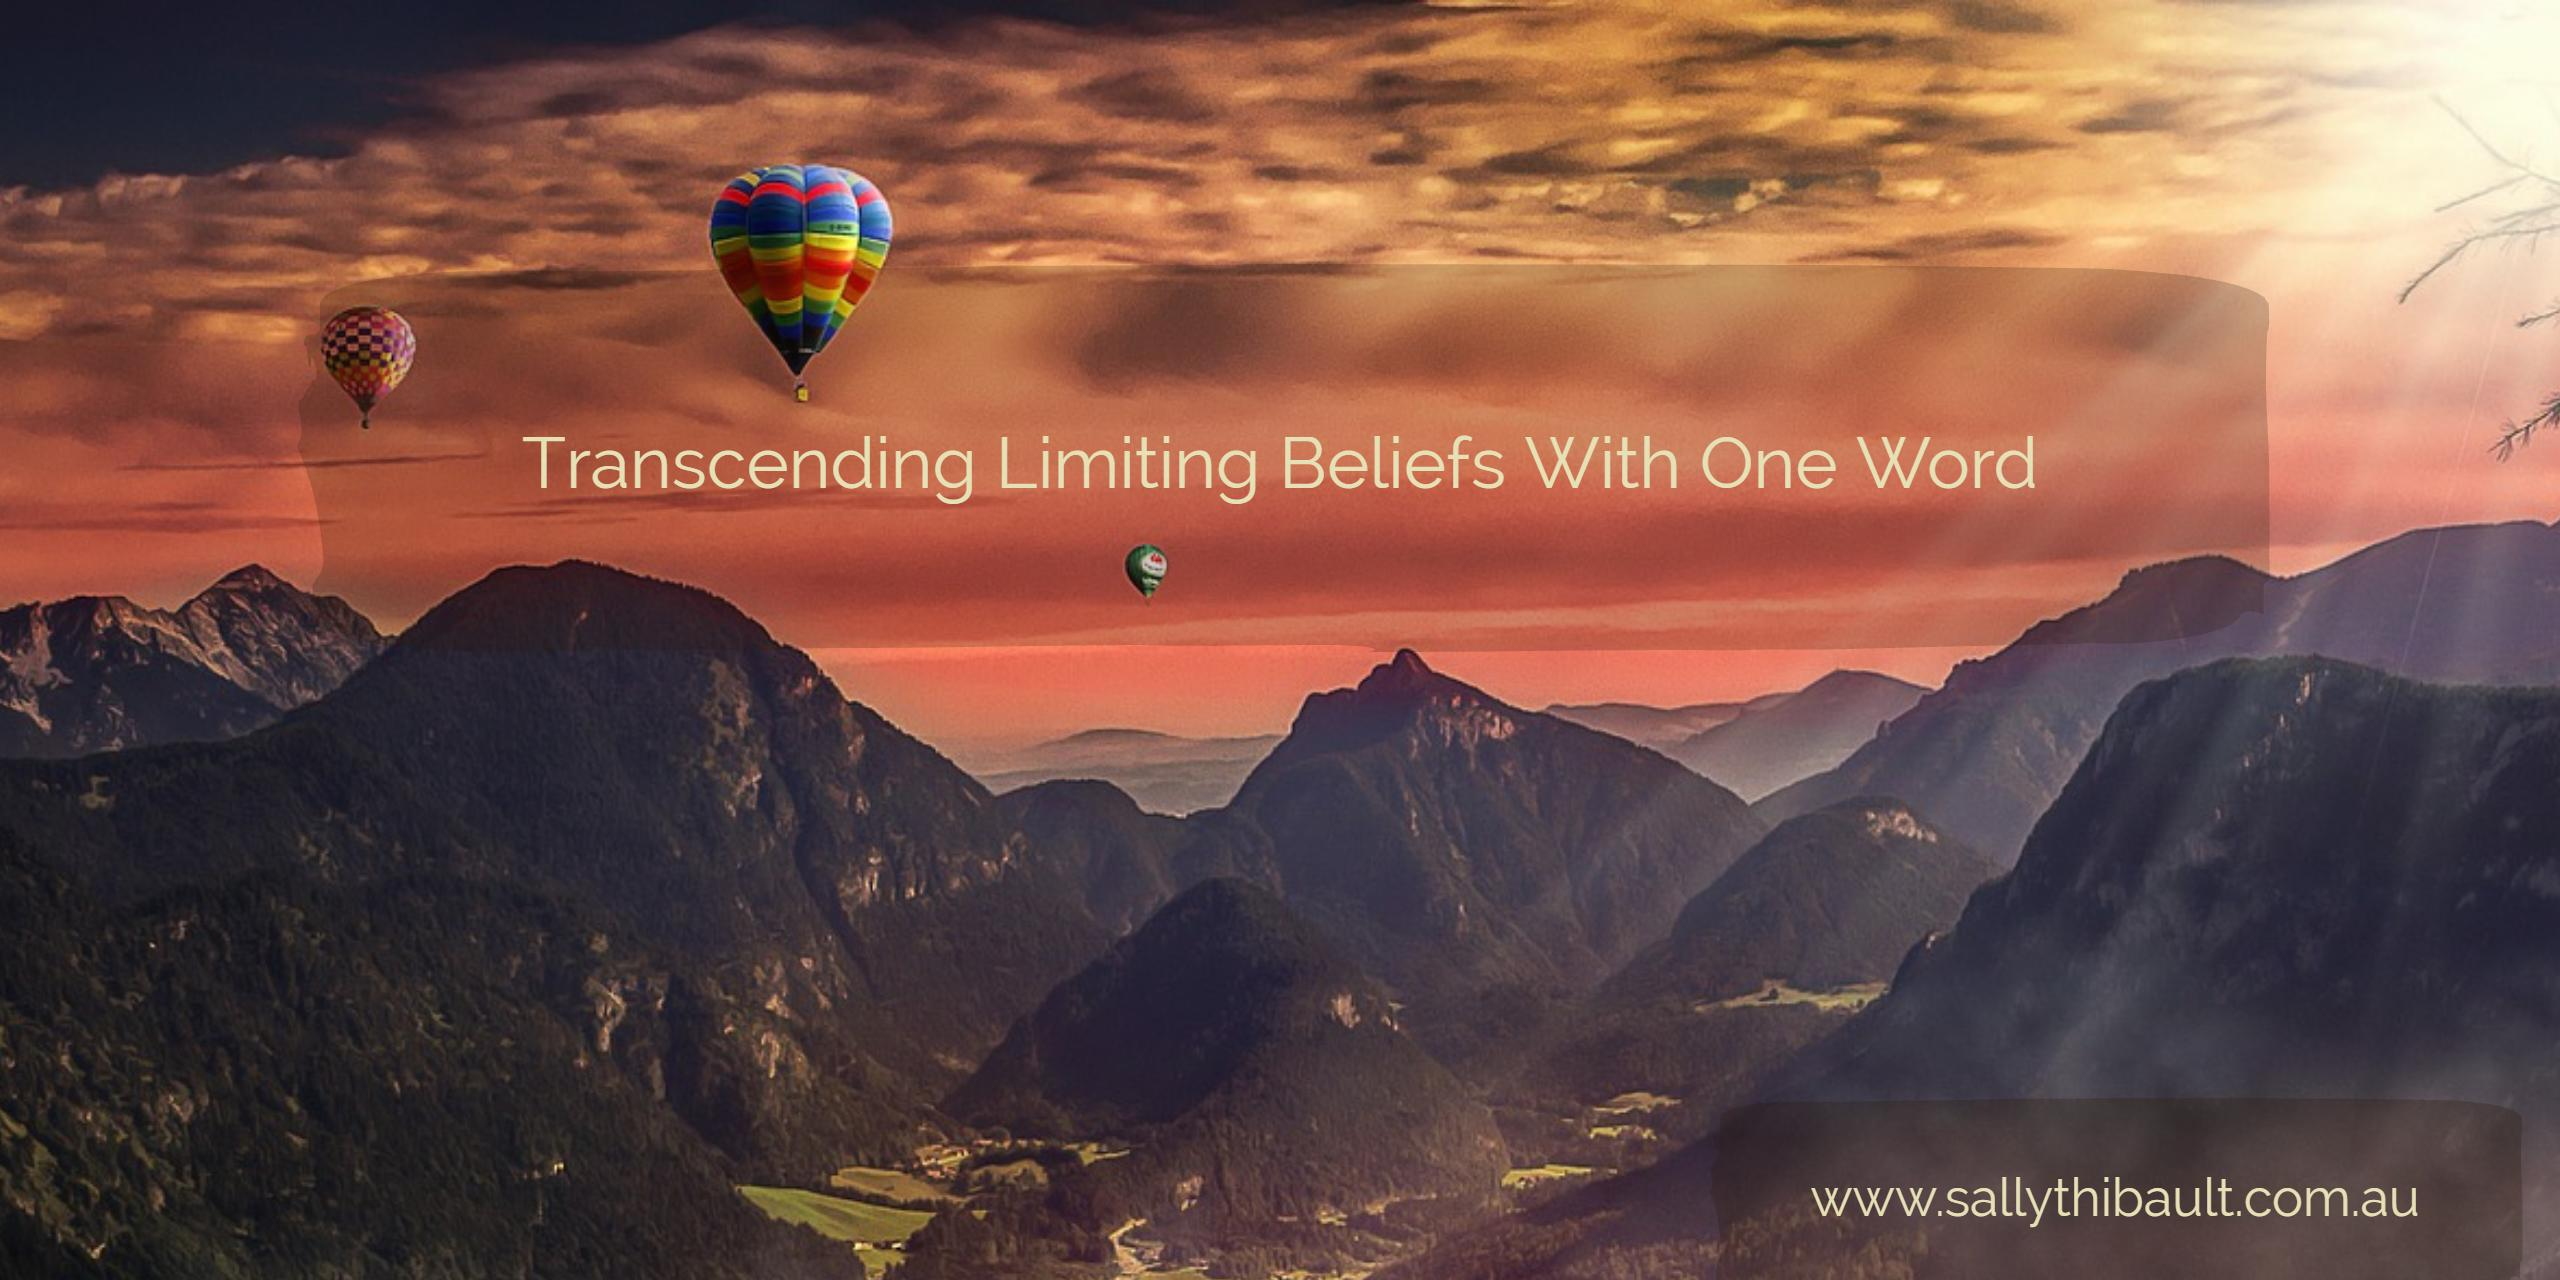 transcending-limiting-beliefs-with-one-word-large-size